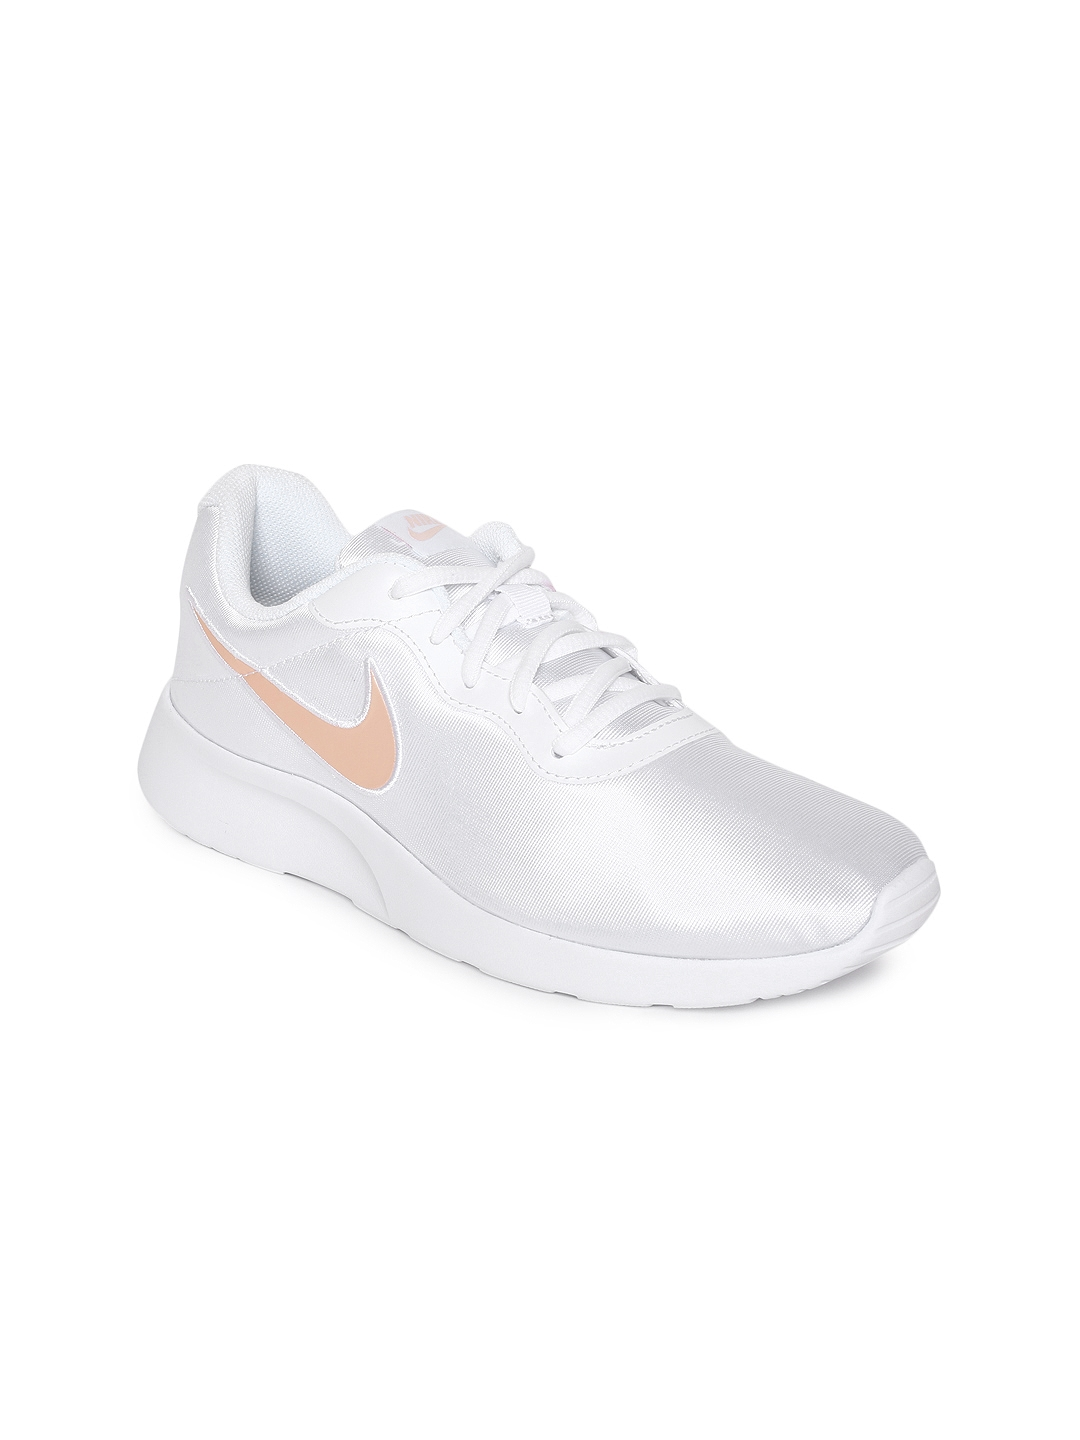 Buy Nike Women White WMNS NIKE TANJUN SE Sneakers - Casual Shoes for ... 46513a0d1